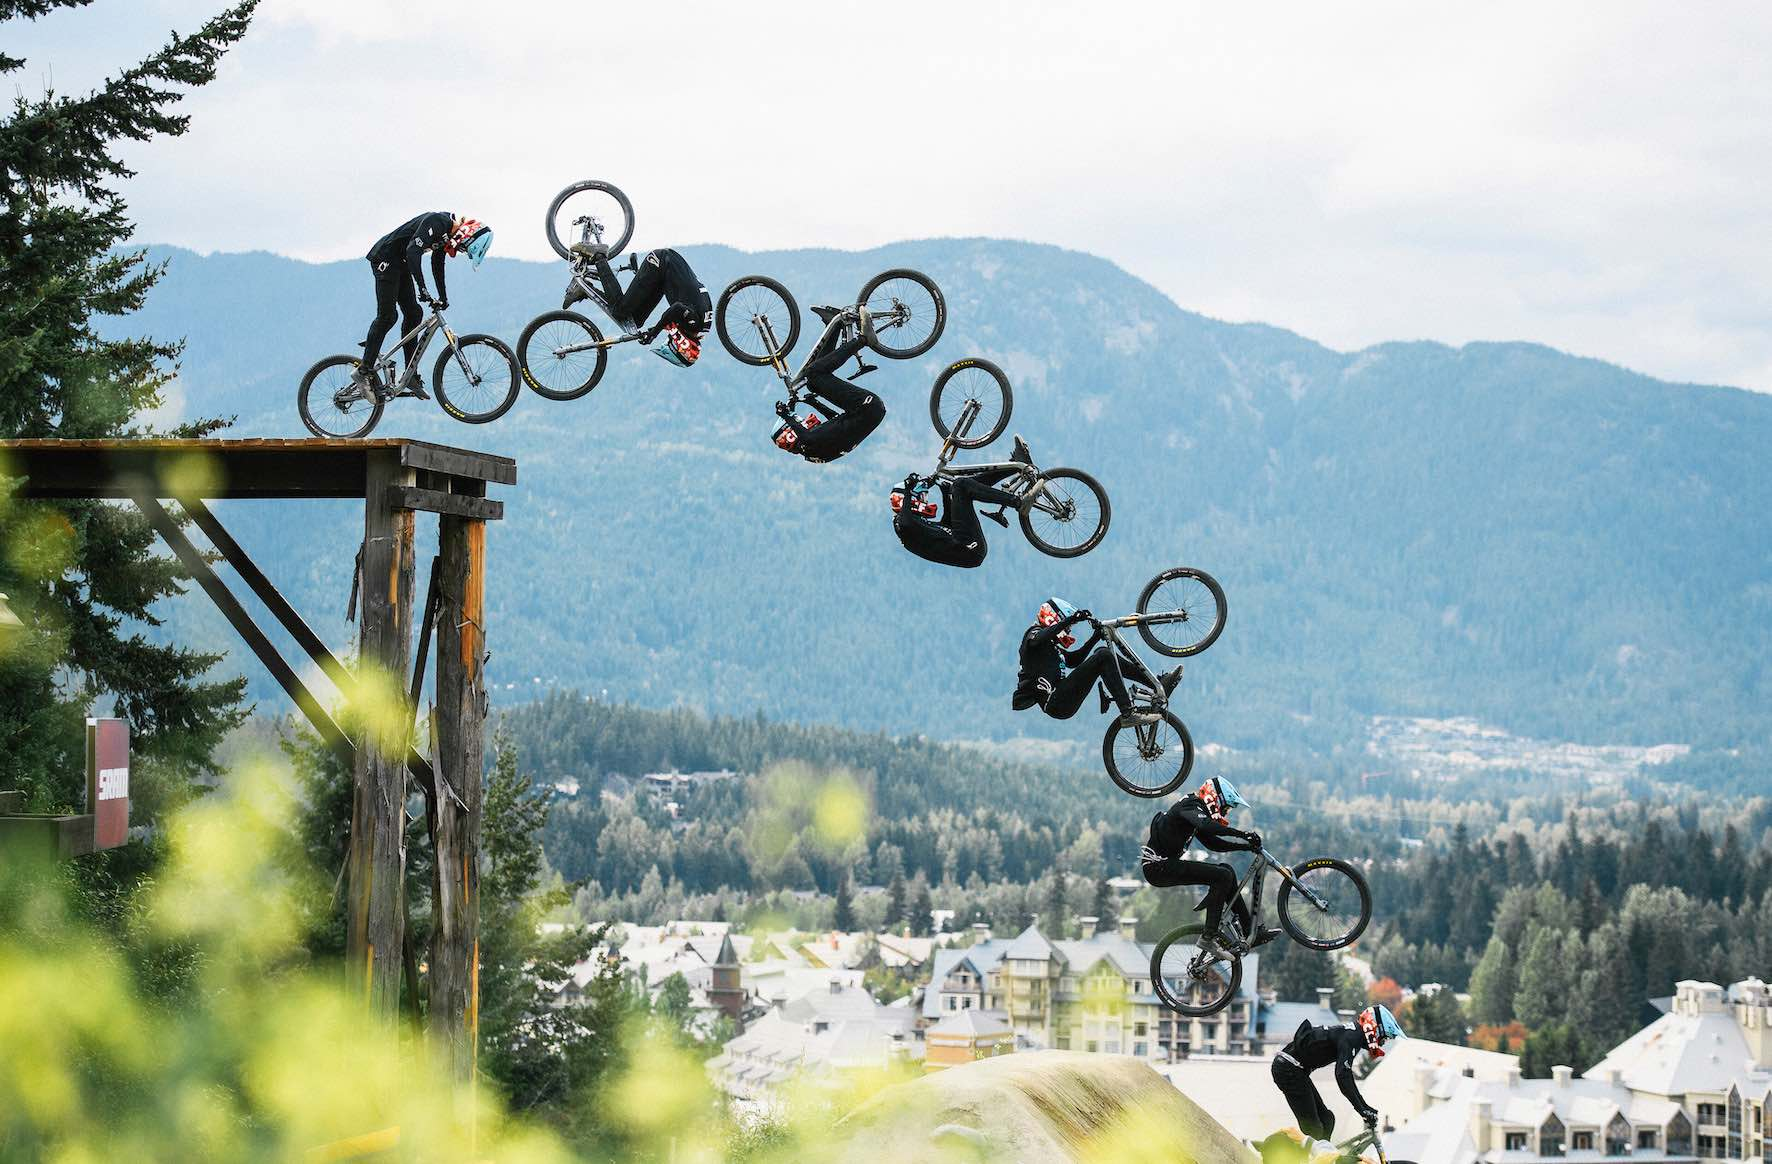 Brett Rheeder competing in the 2019 Crankworx Whistler Slopestyle MTB event